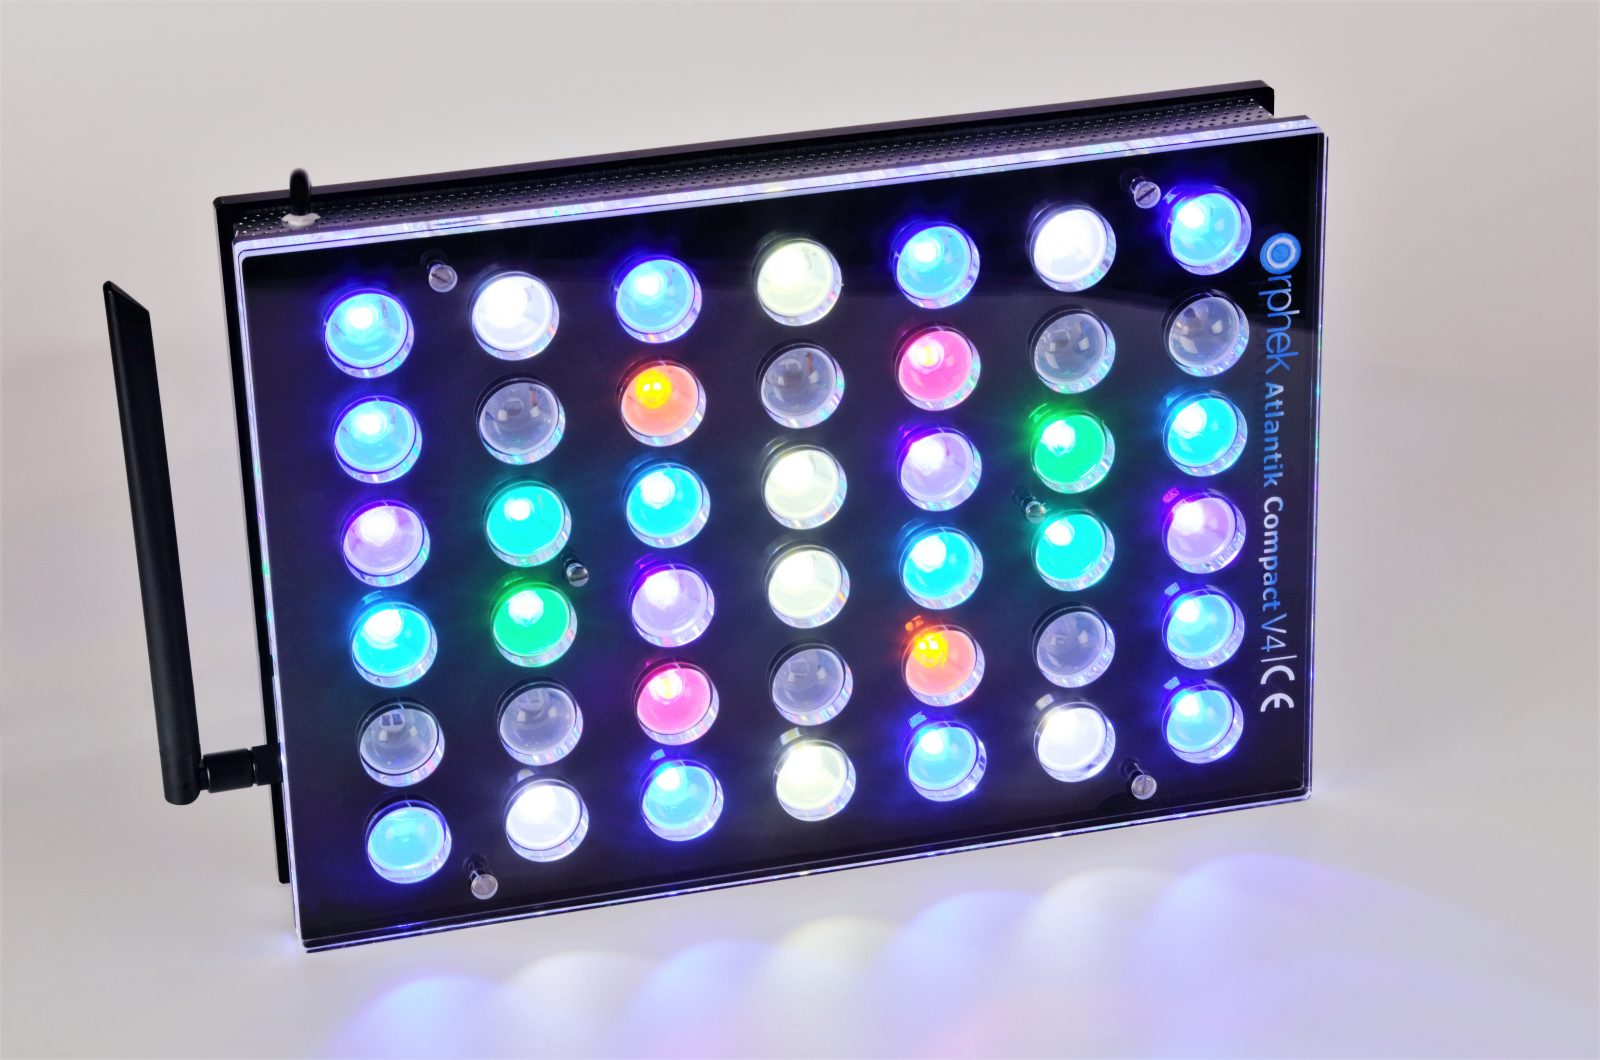 Orphek Aquarium LED Lighting Atlantik Kompak V4 cahya ing saluran 1 + 2 + 4